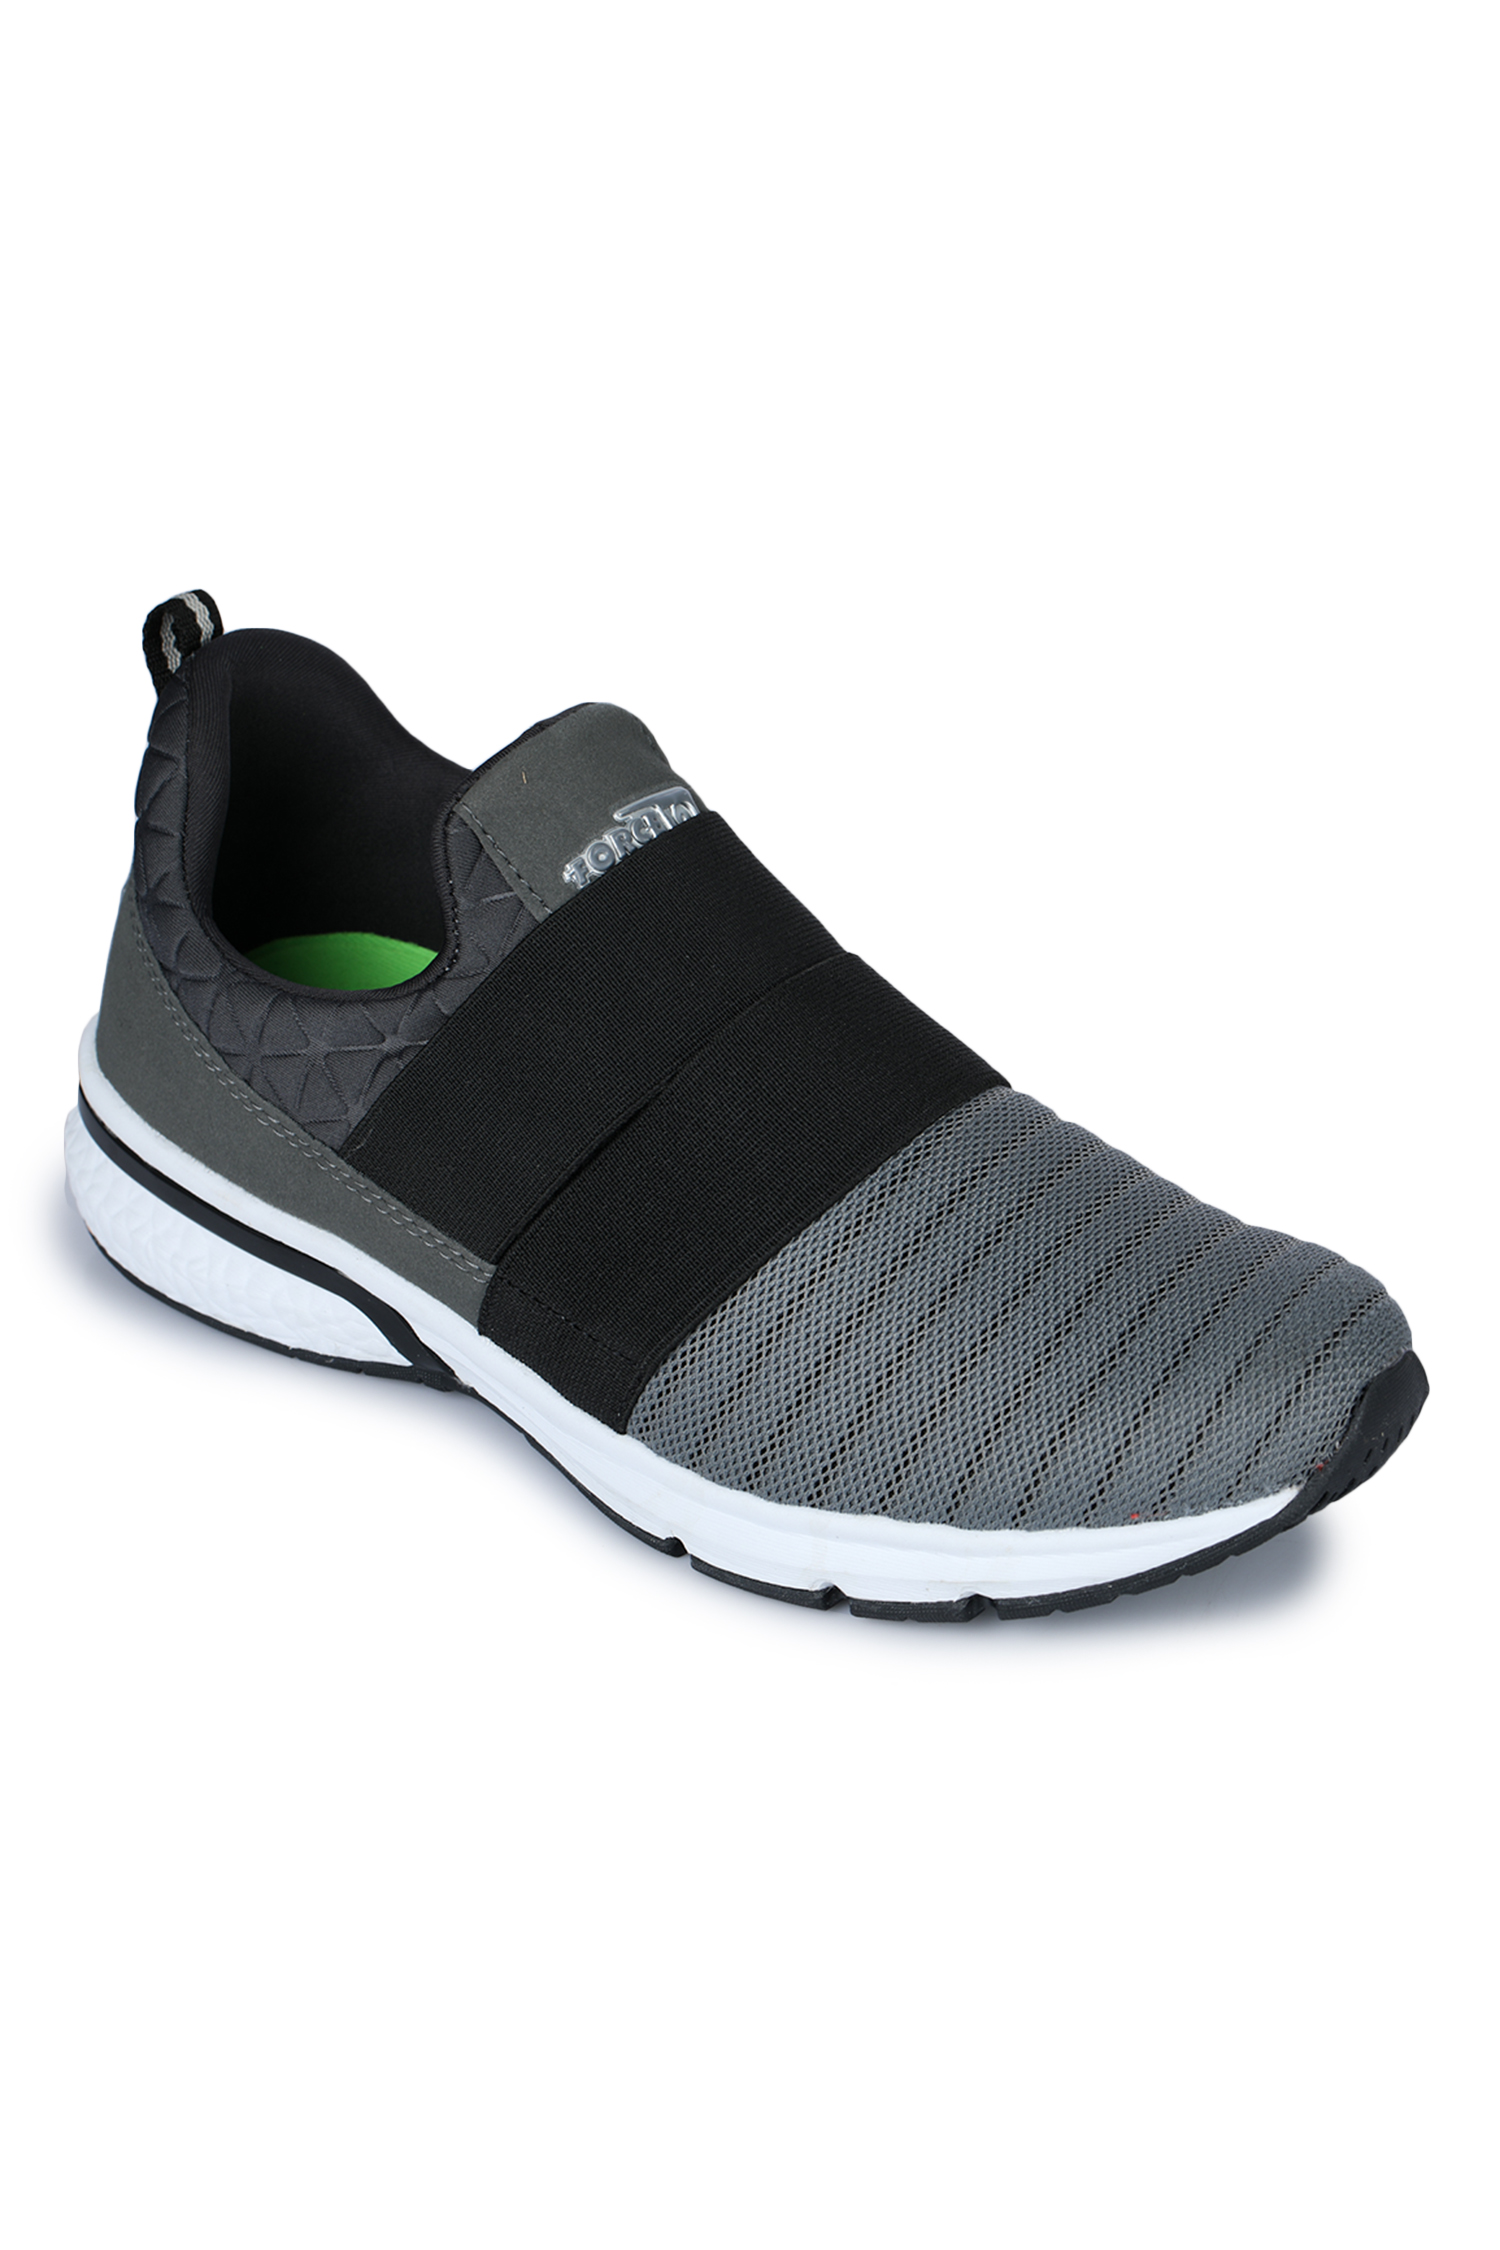 Liberty   Liberty Force 10 Grey Sports Wailking Shoes TOMM-1_Grey For - Men